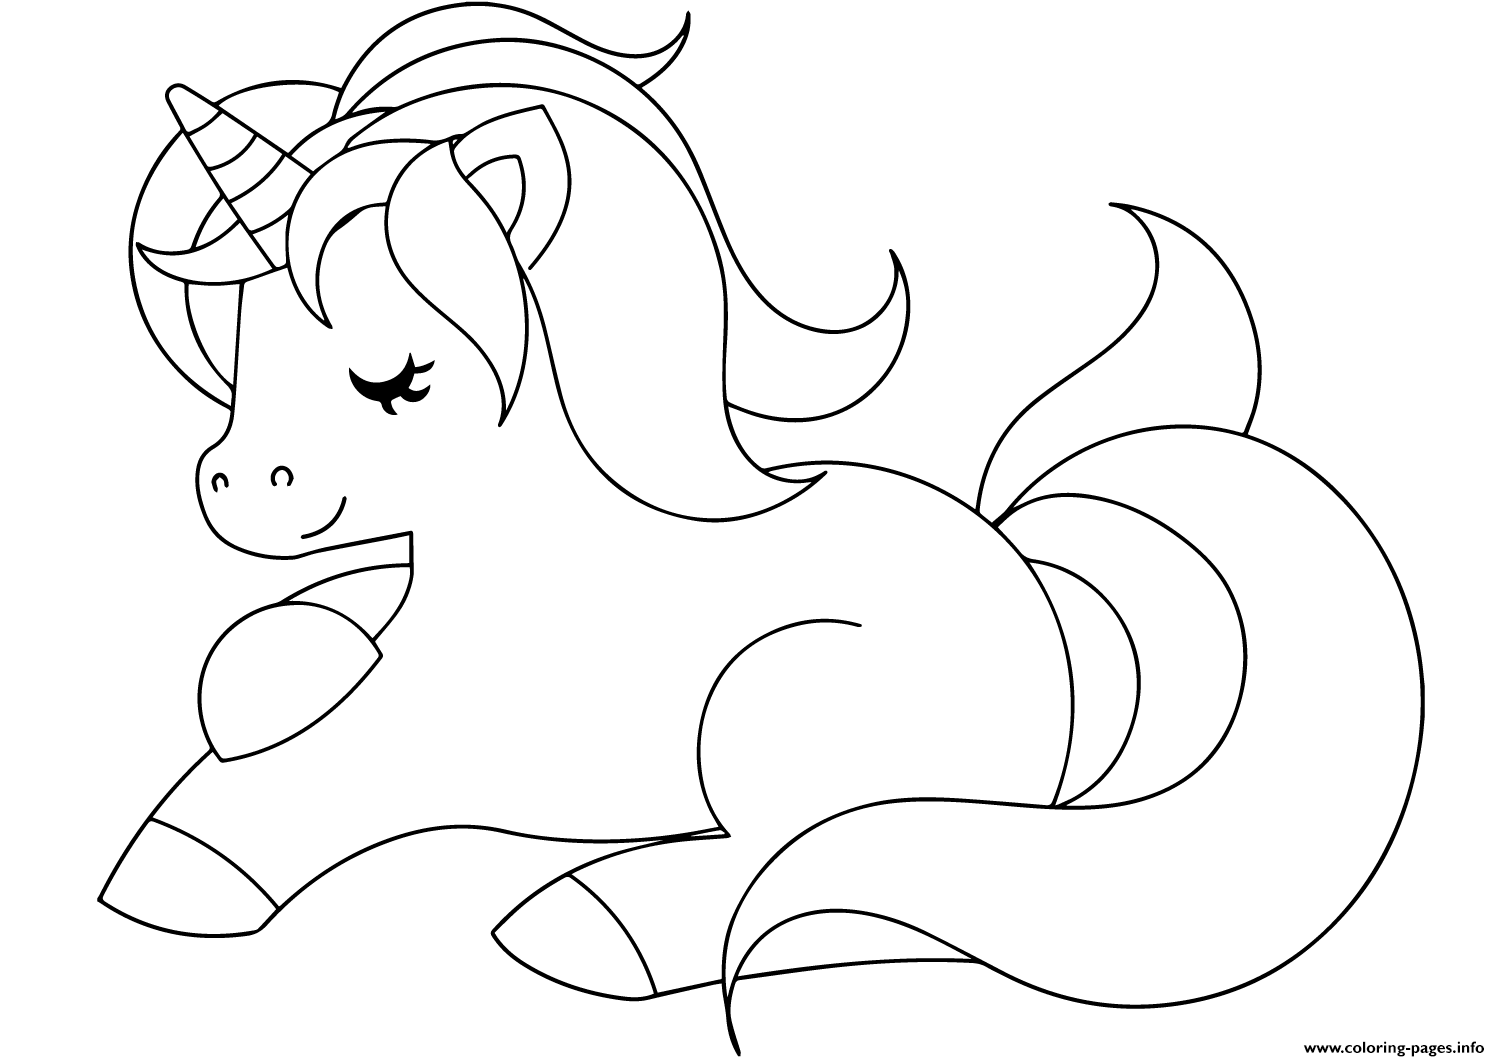 Print Cute Unicorn Sleeping Coloring Pages Unicorn Coloring